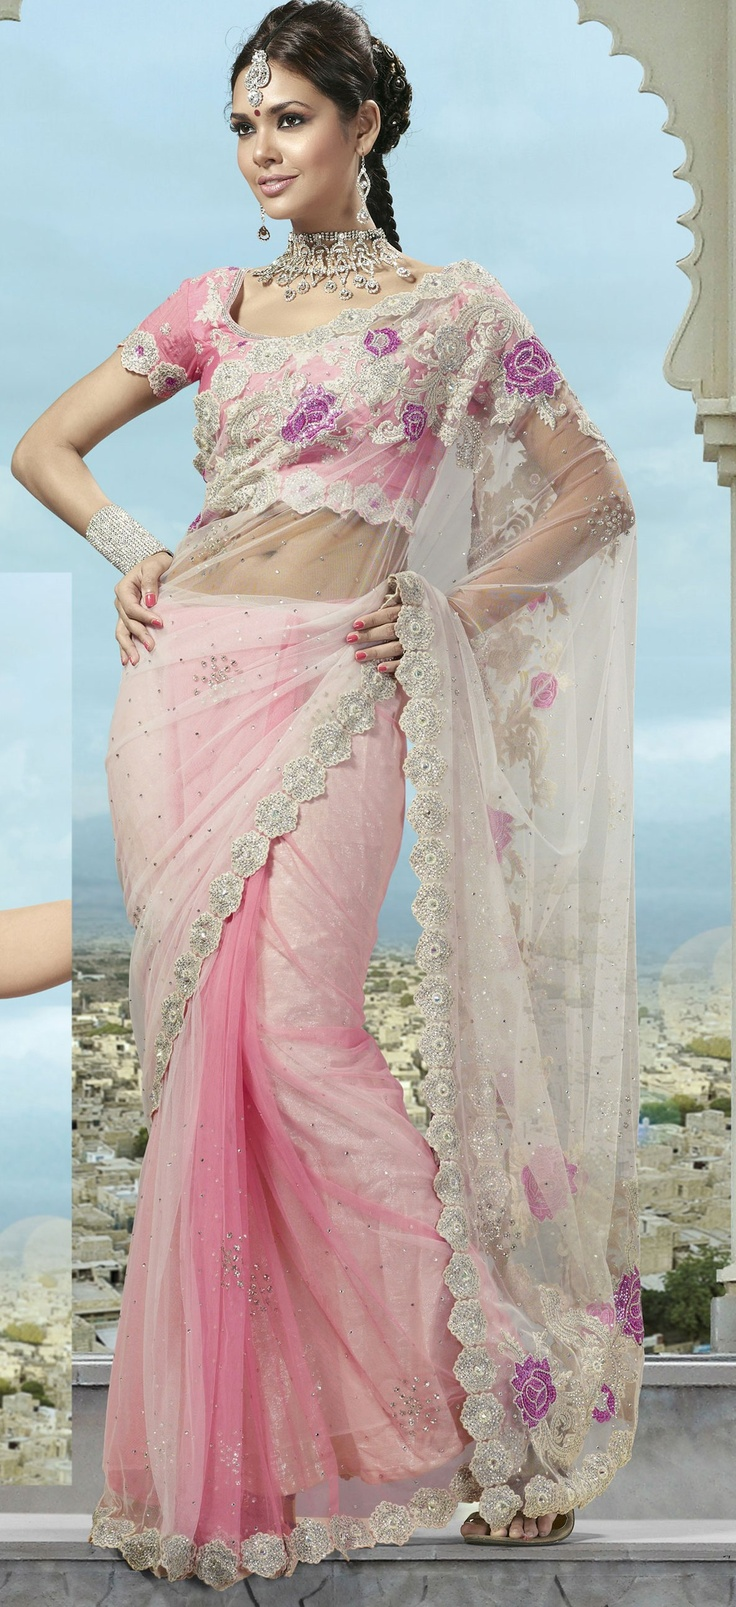 Pink Net Saree with Blouse Itemcode: SLSXZ90 Price: US$ 128.45 Click @ http://www.utsavfashion.com/store/sarees-large.aspx?icode=SLSXZ90